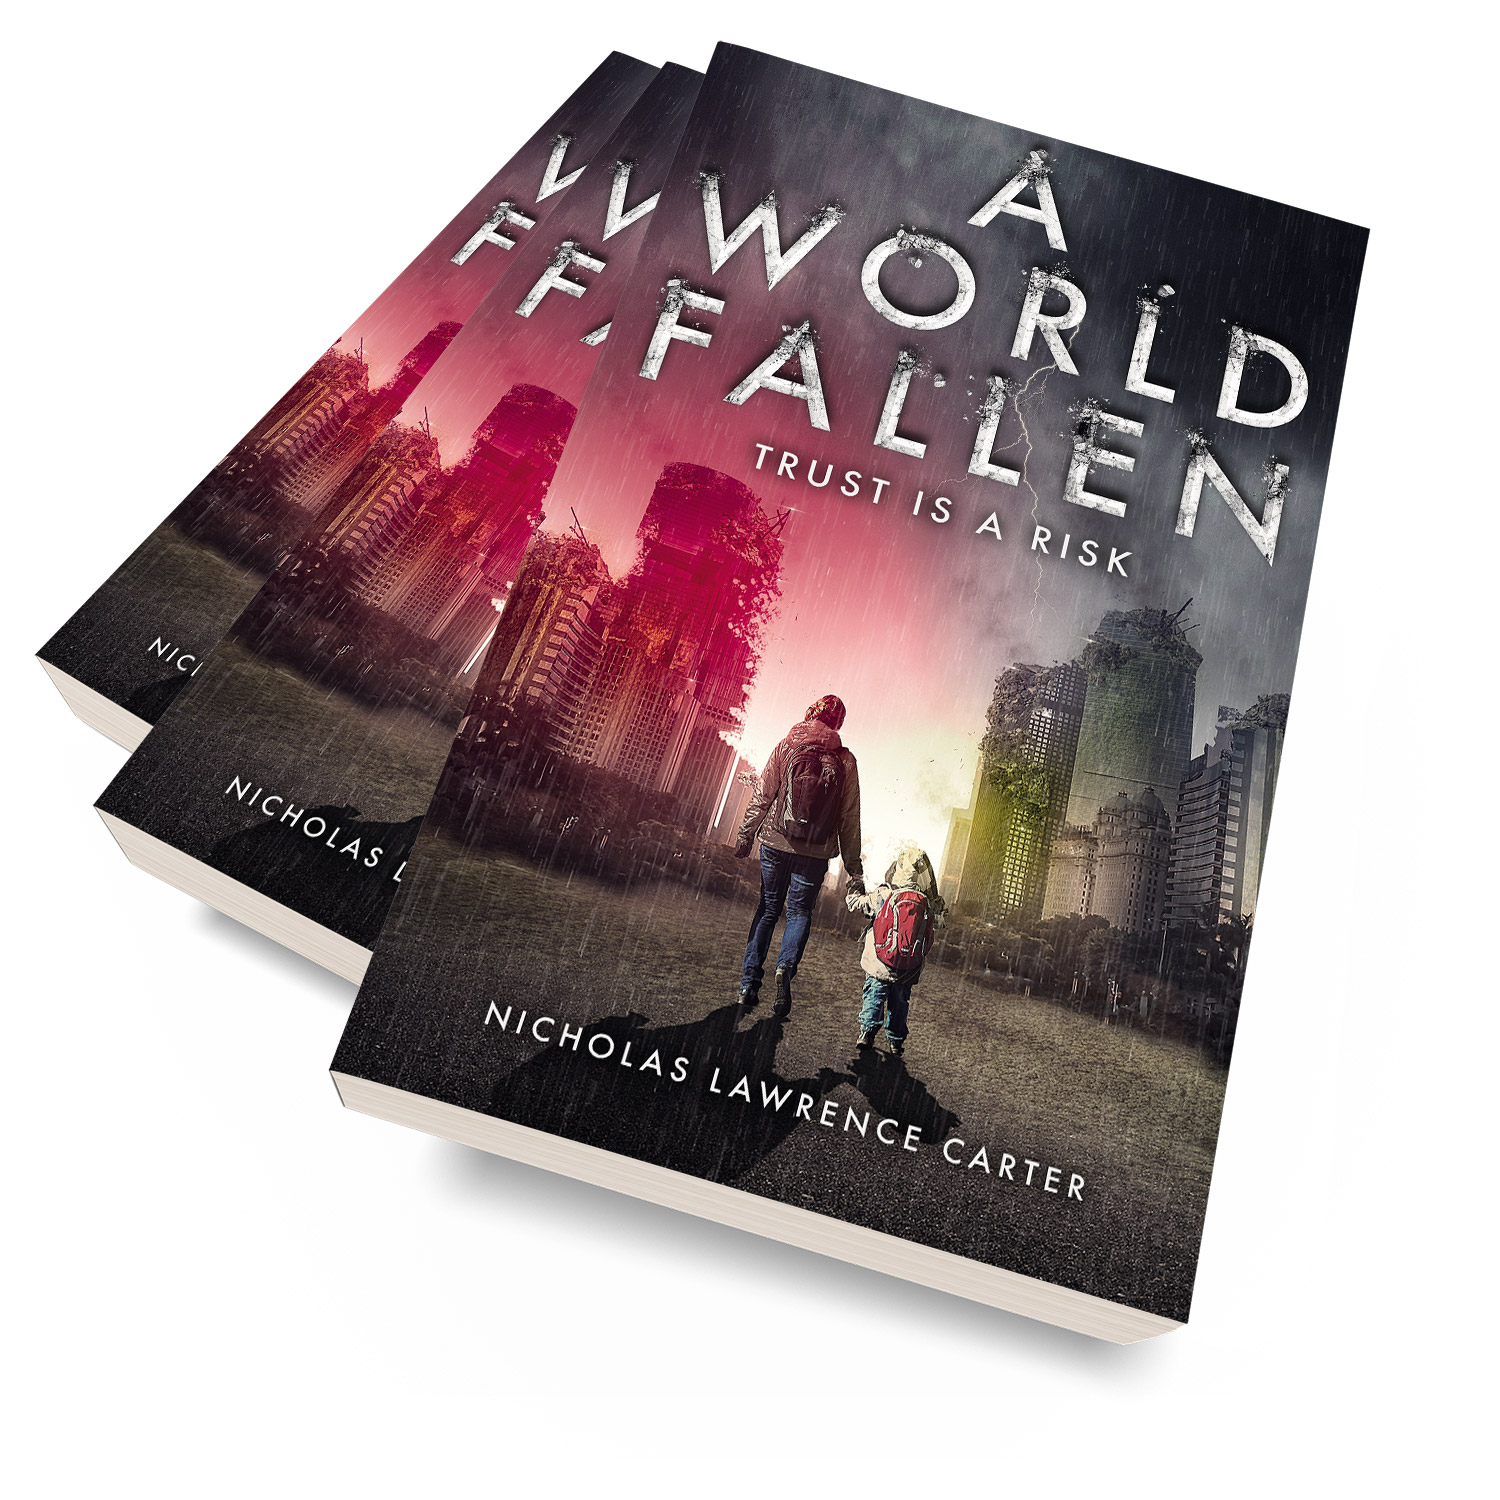 'A World Fallen' is an immersive, post-apocalyse scifi novel. The author is Nicholas Lawrence Carter. The book cover design is by Mark Thomas. To learn more about what Mark could do for your book, please visit coverness.com